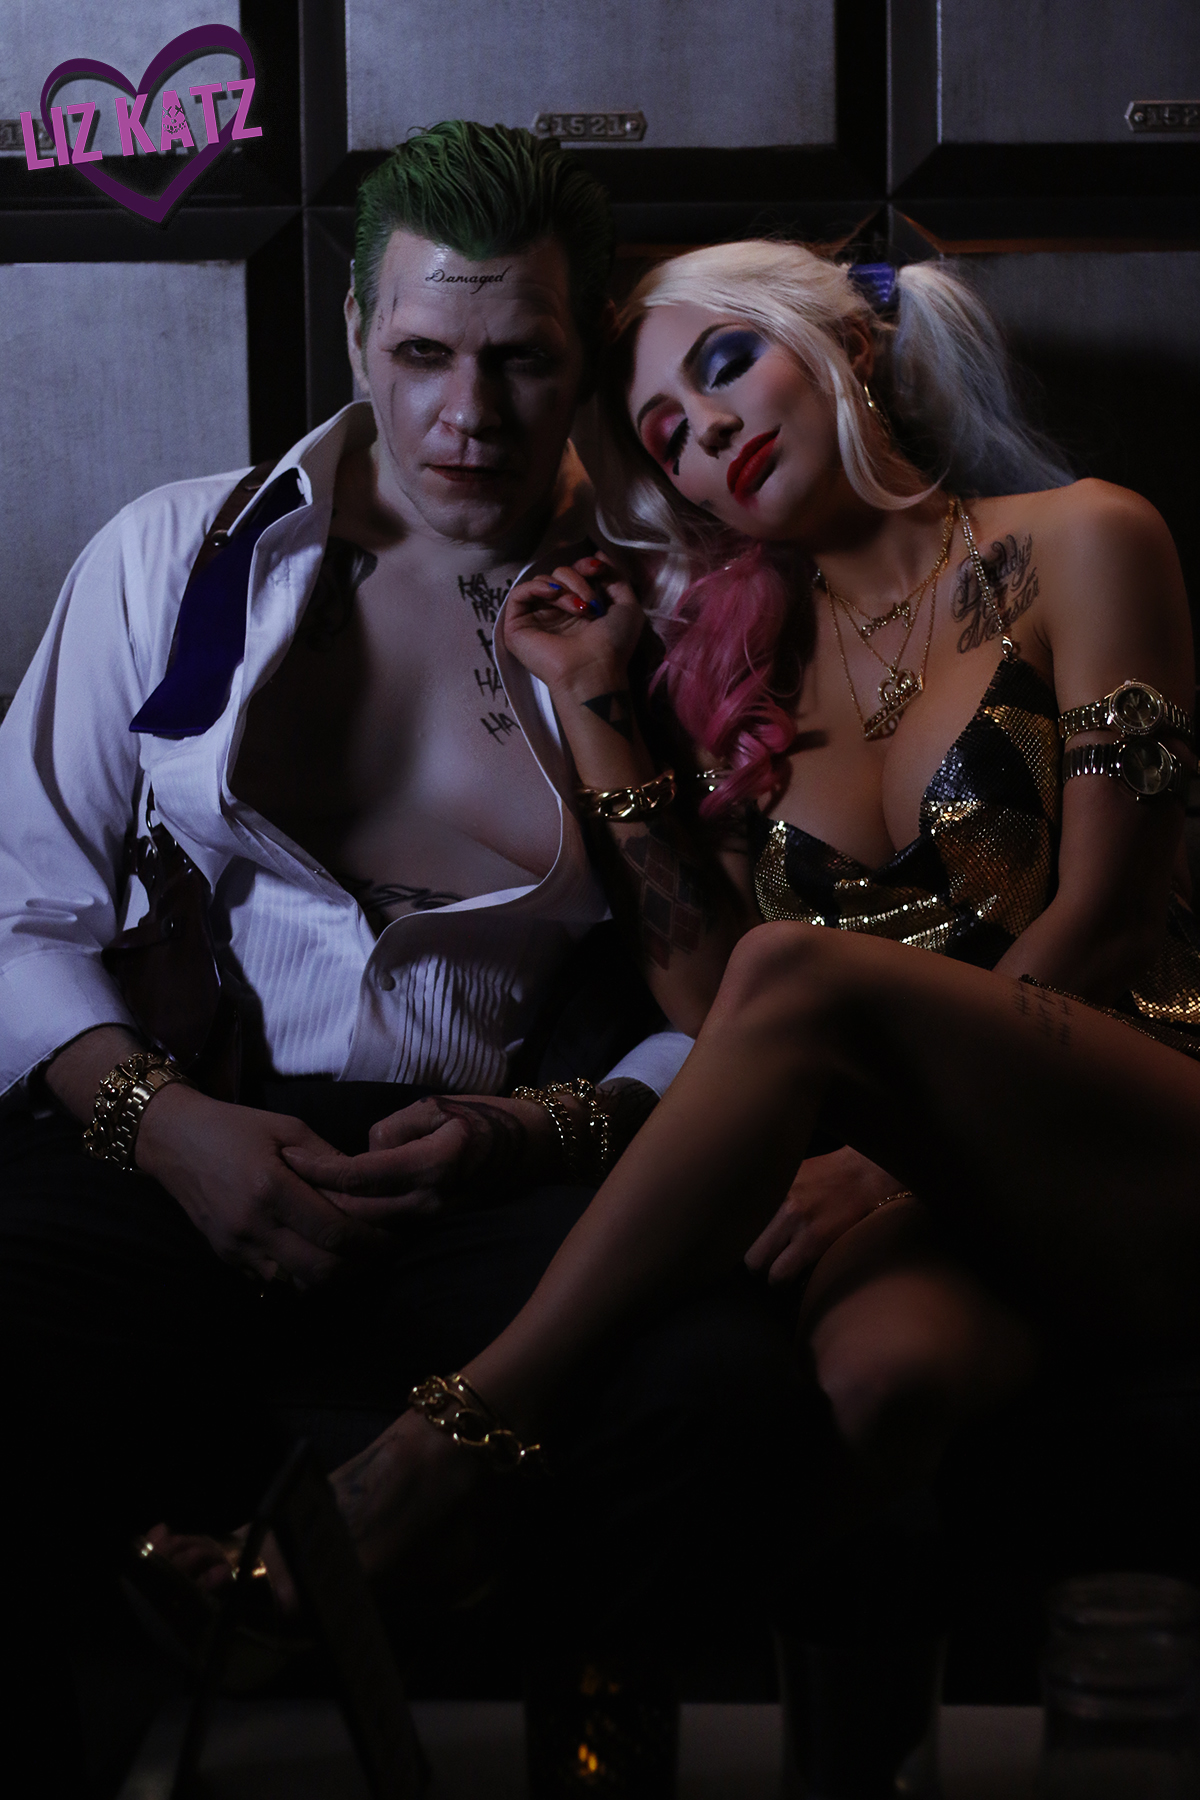 Suicide Squad Harley Quinn cosplay and Joker Cosplay in Mr. J and I by Liz Katz and Sam Macaroni